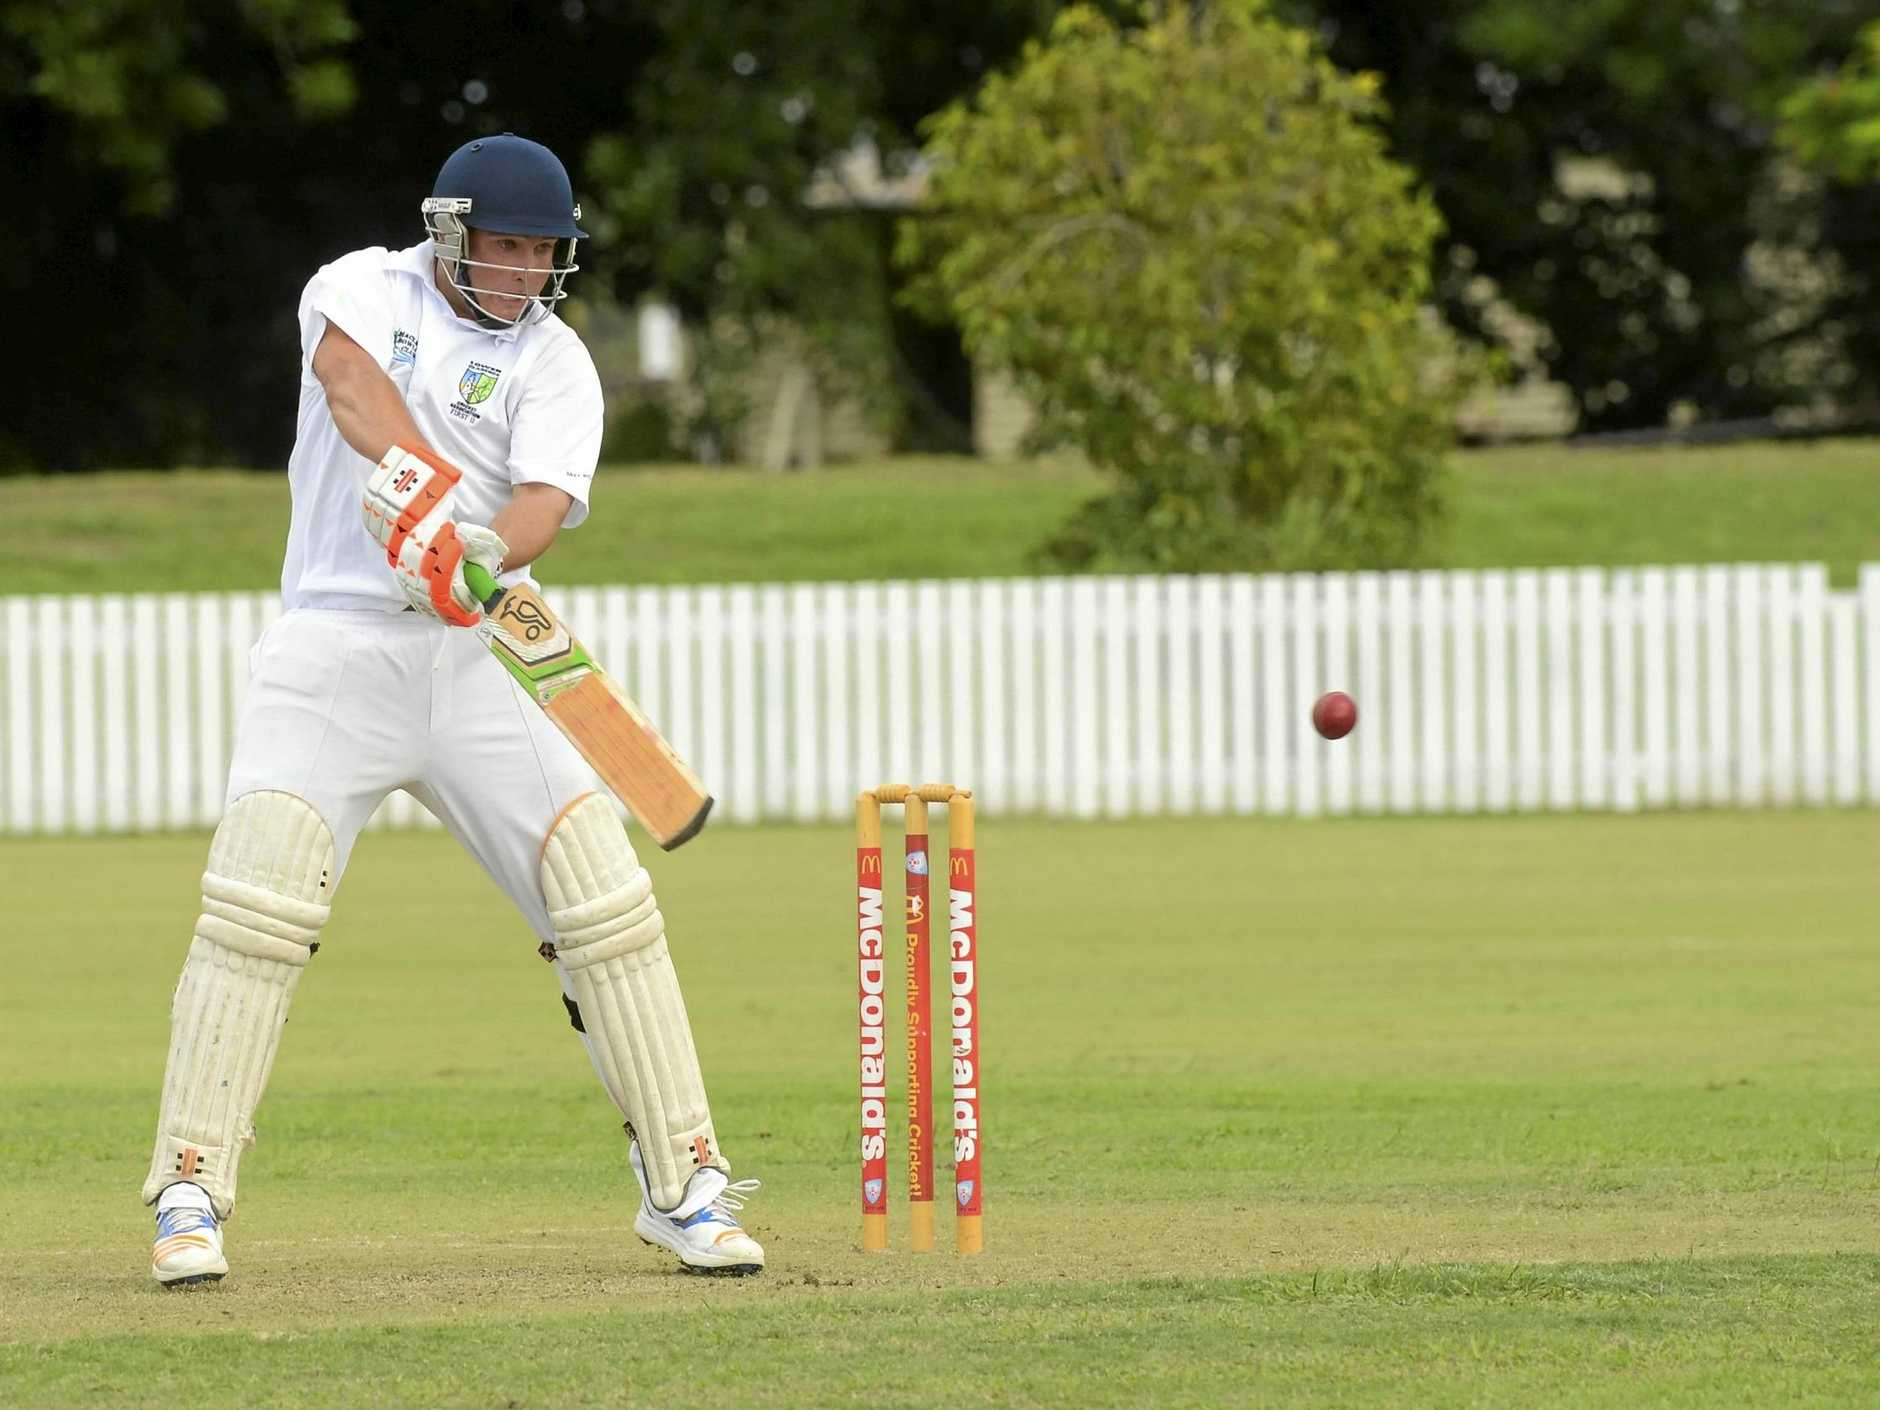 Jarrad Moran lays back into a strong cut shot through backward point during the North Coast Cricket Council interdistrict clash betwen Lower Clarence and Nambucca Valley at Harwood Oval.